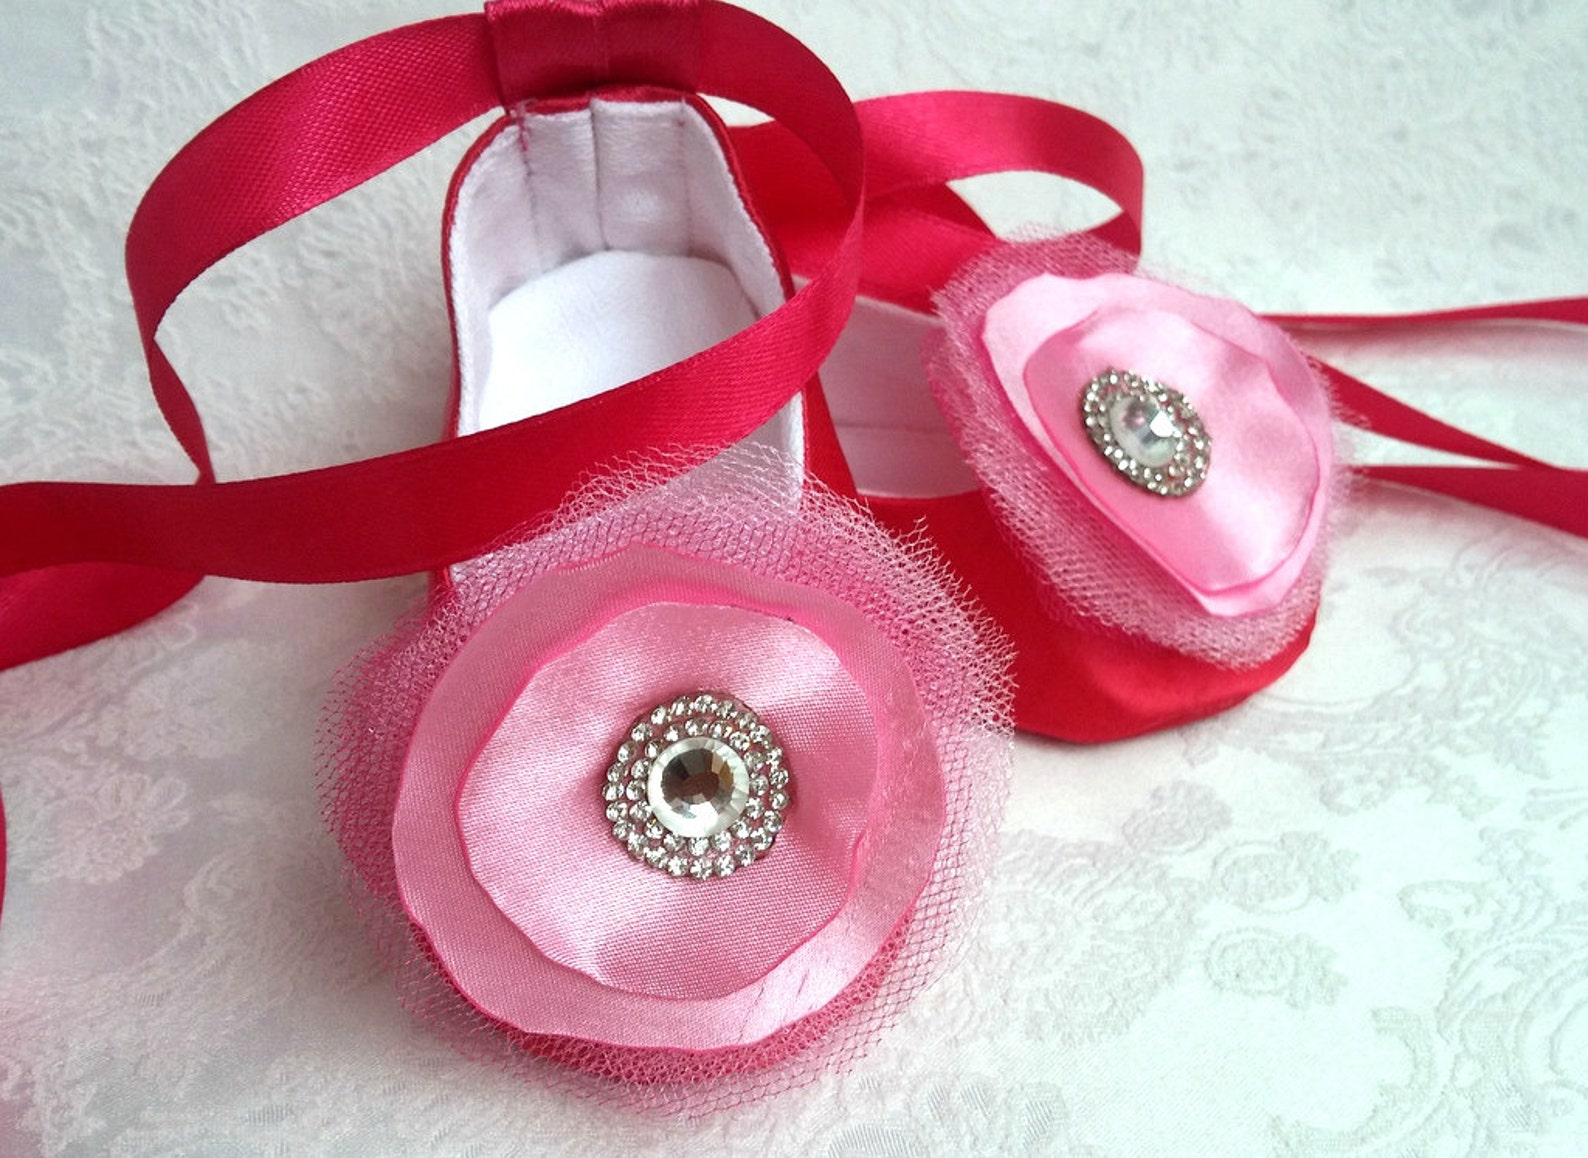 baby ballet flower shoes, sparkly rhinestone shoes, wedding shoes, dark pink satin shoes, ballerina baby shower gift, satin ball